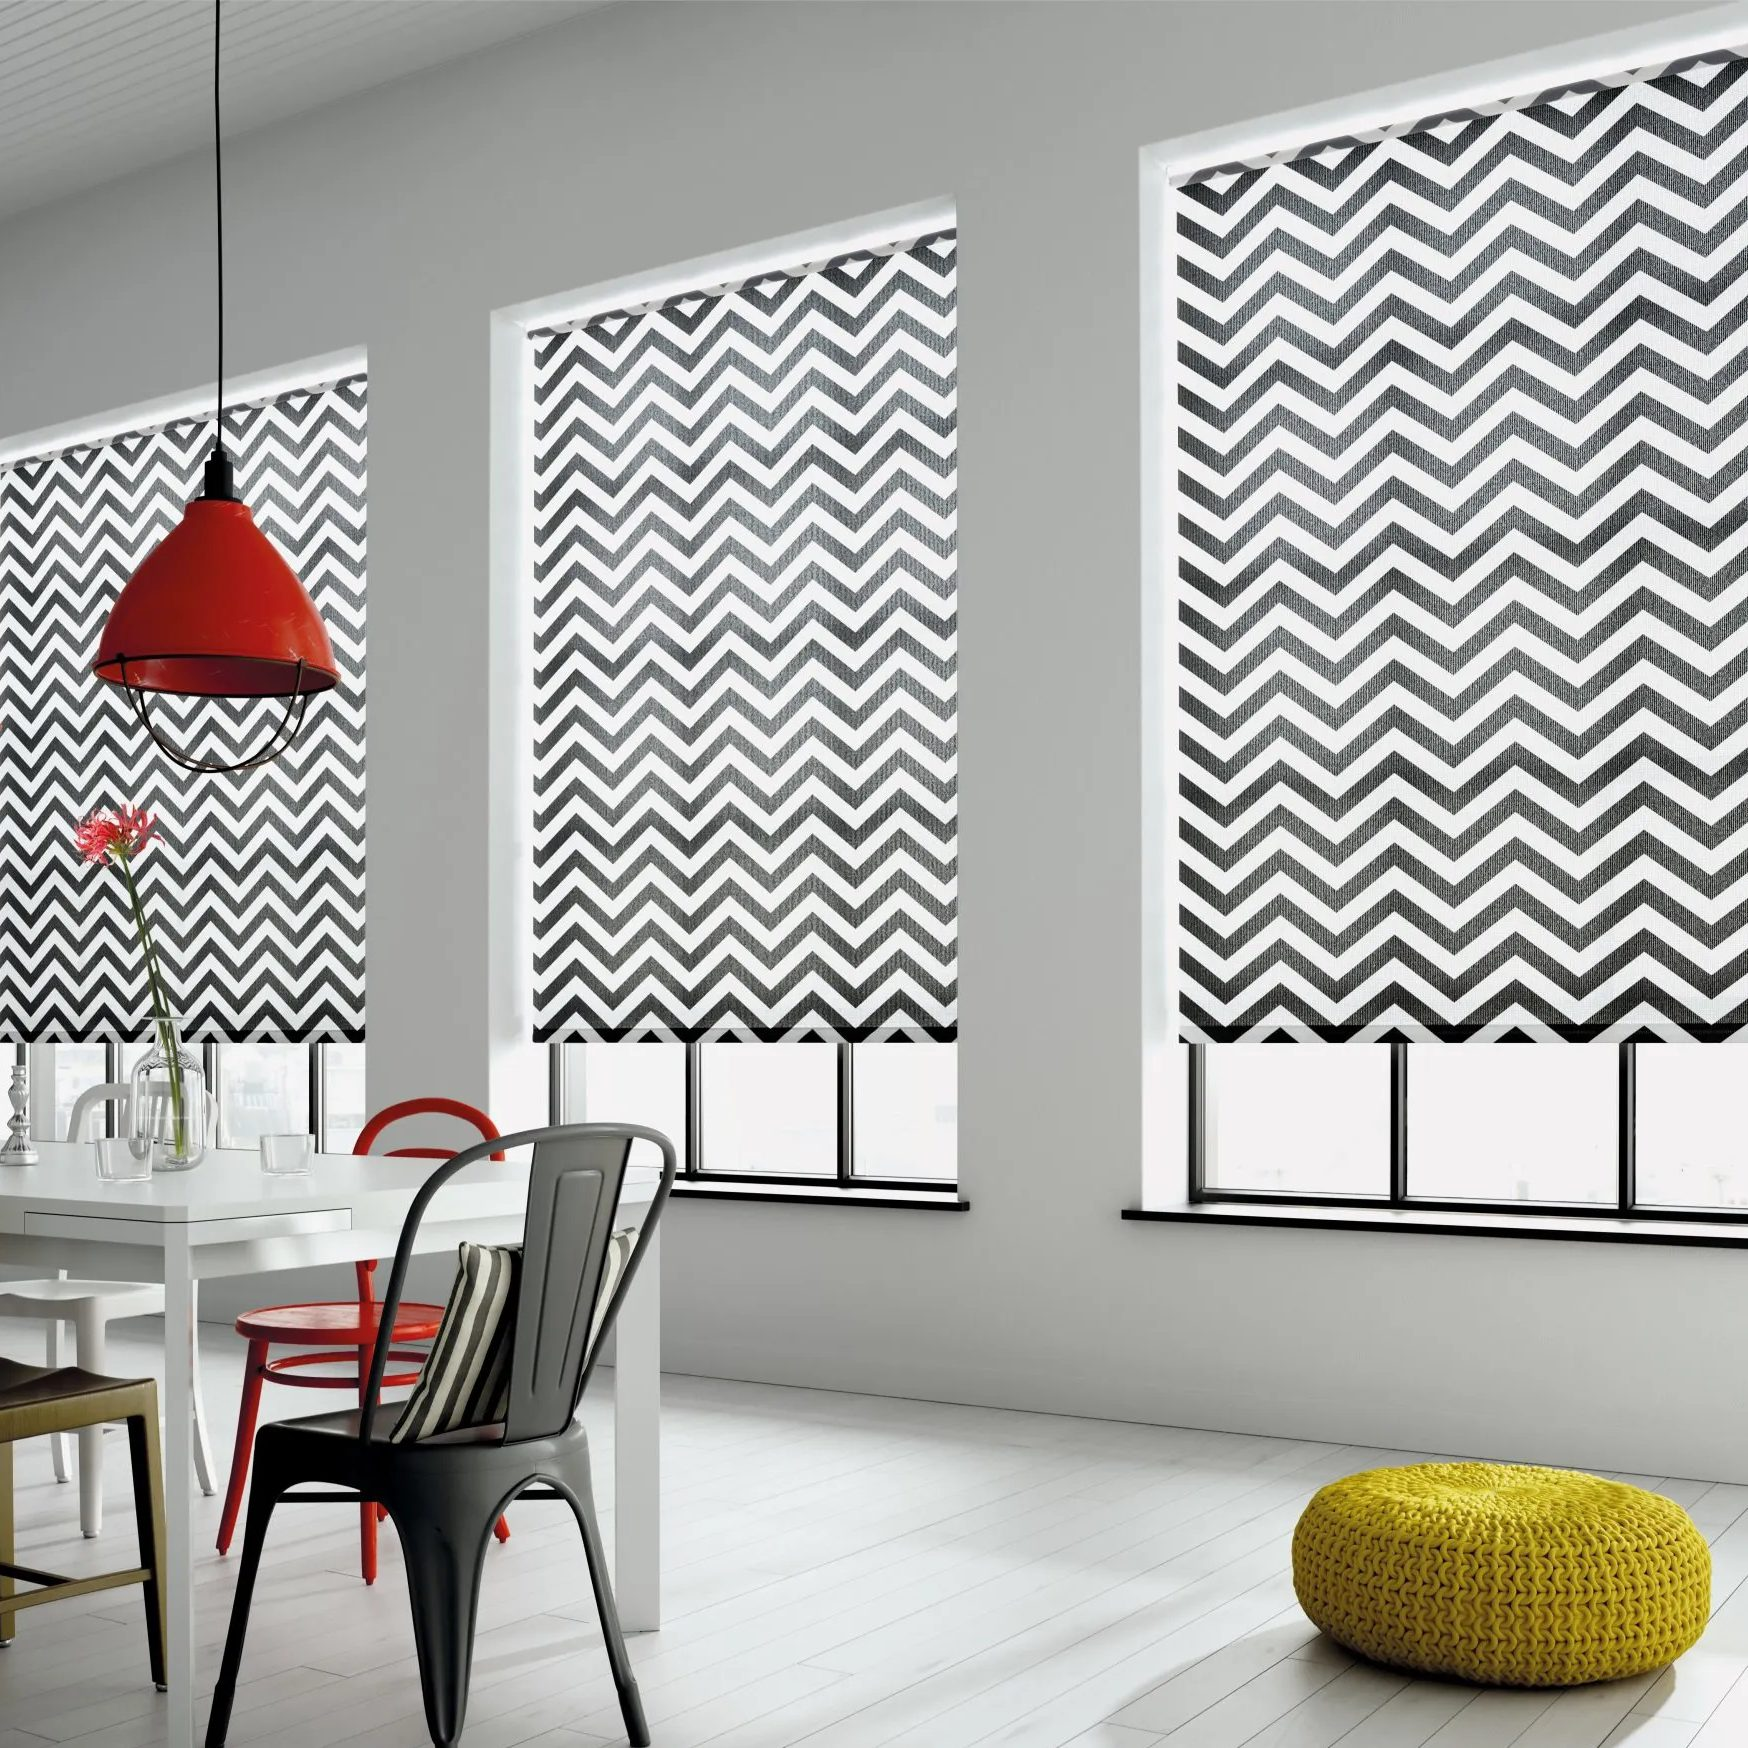 Black and white patterned roller blinds in a modern dining room